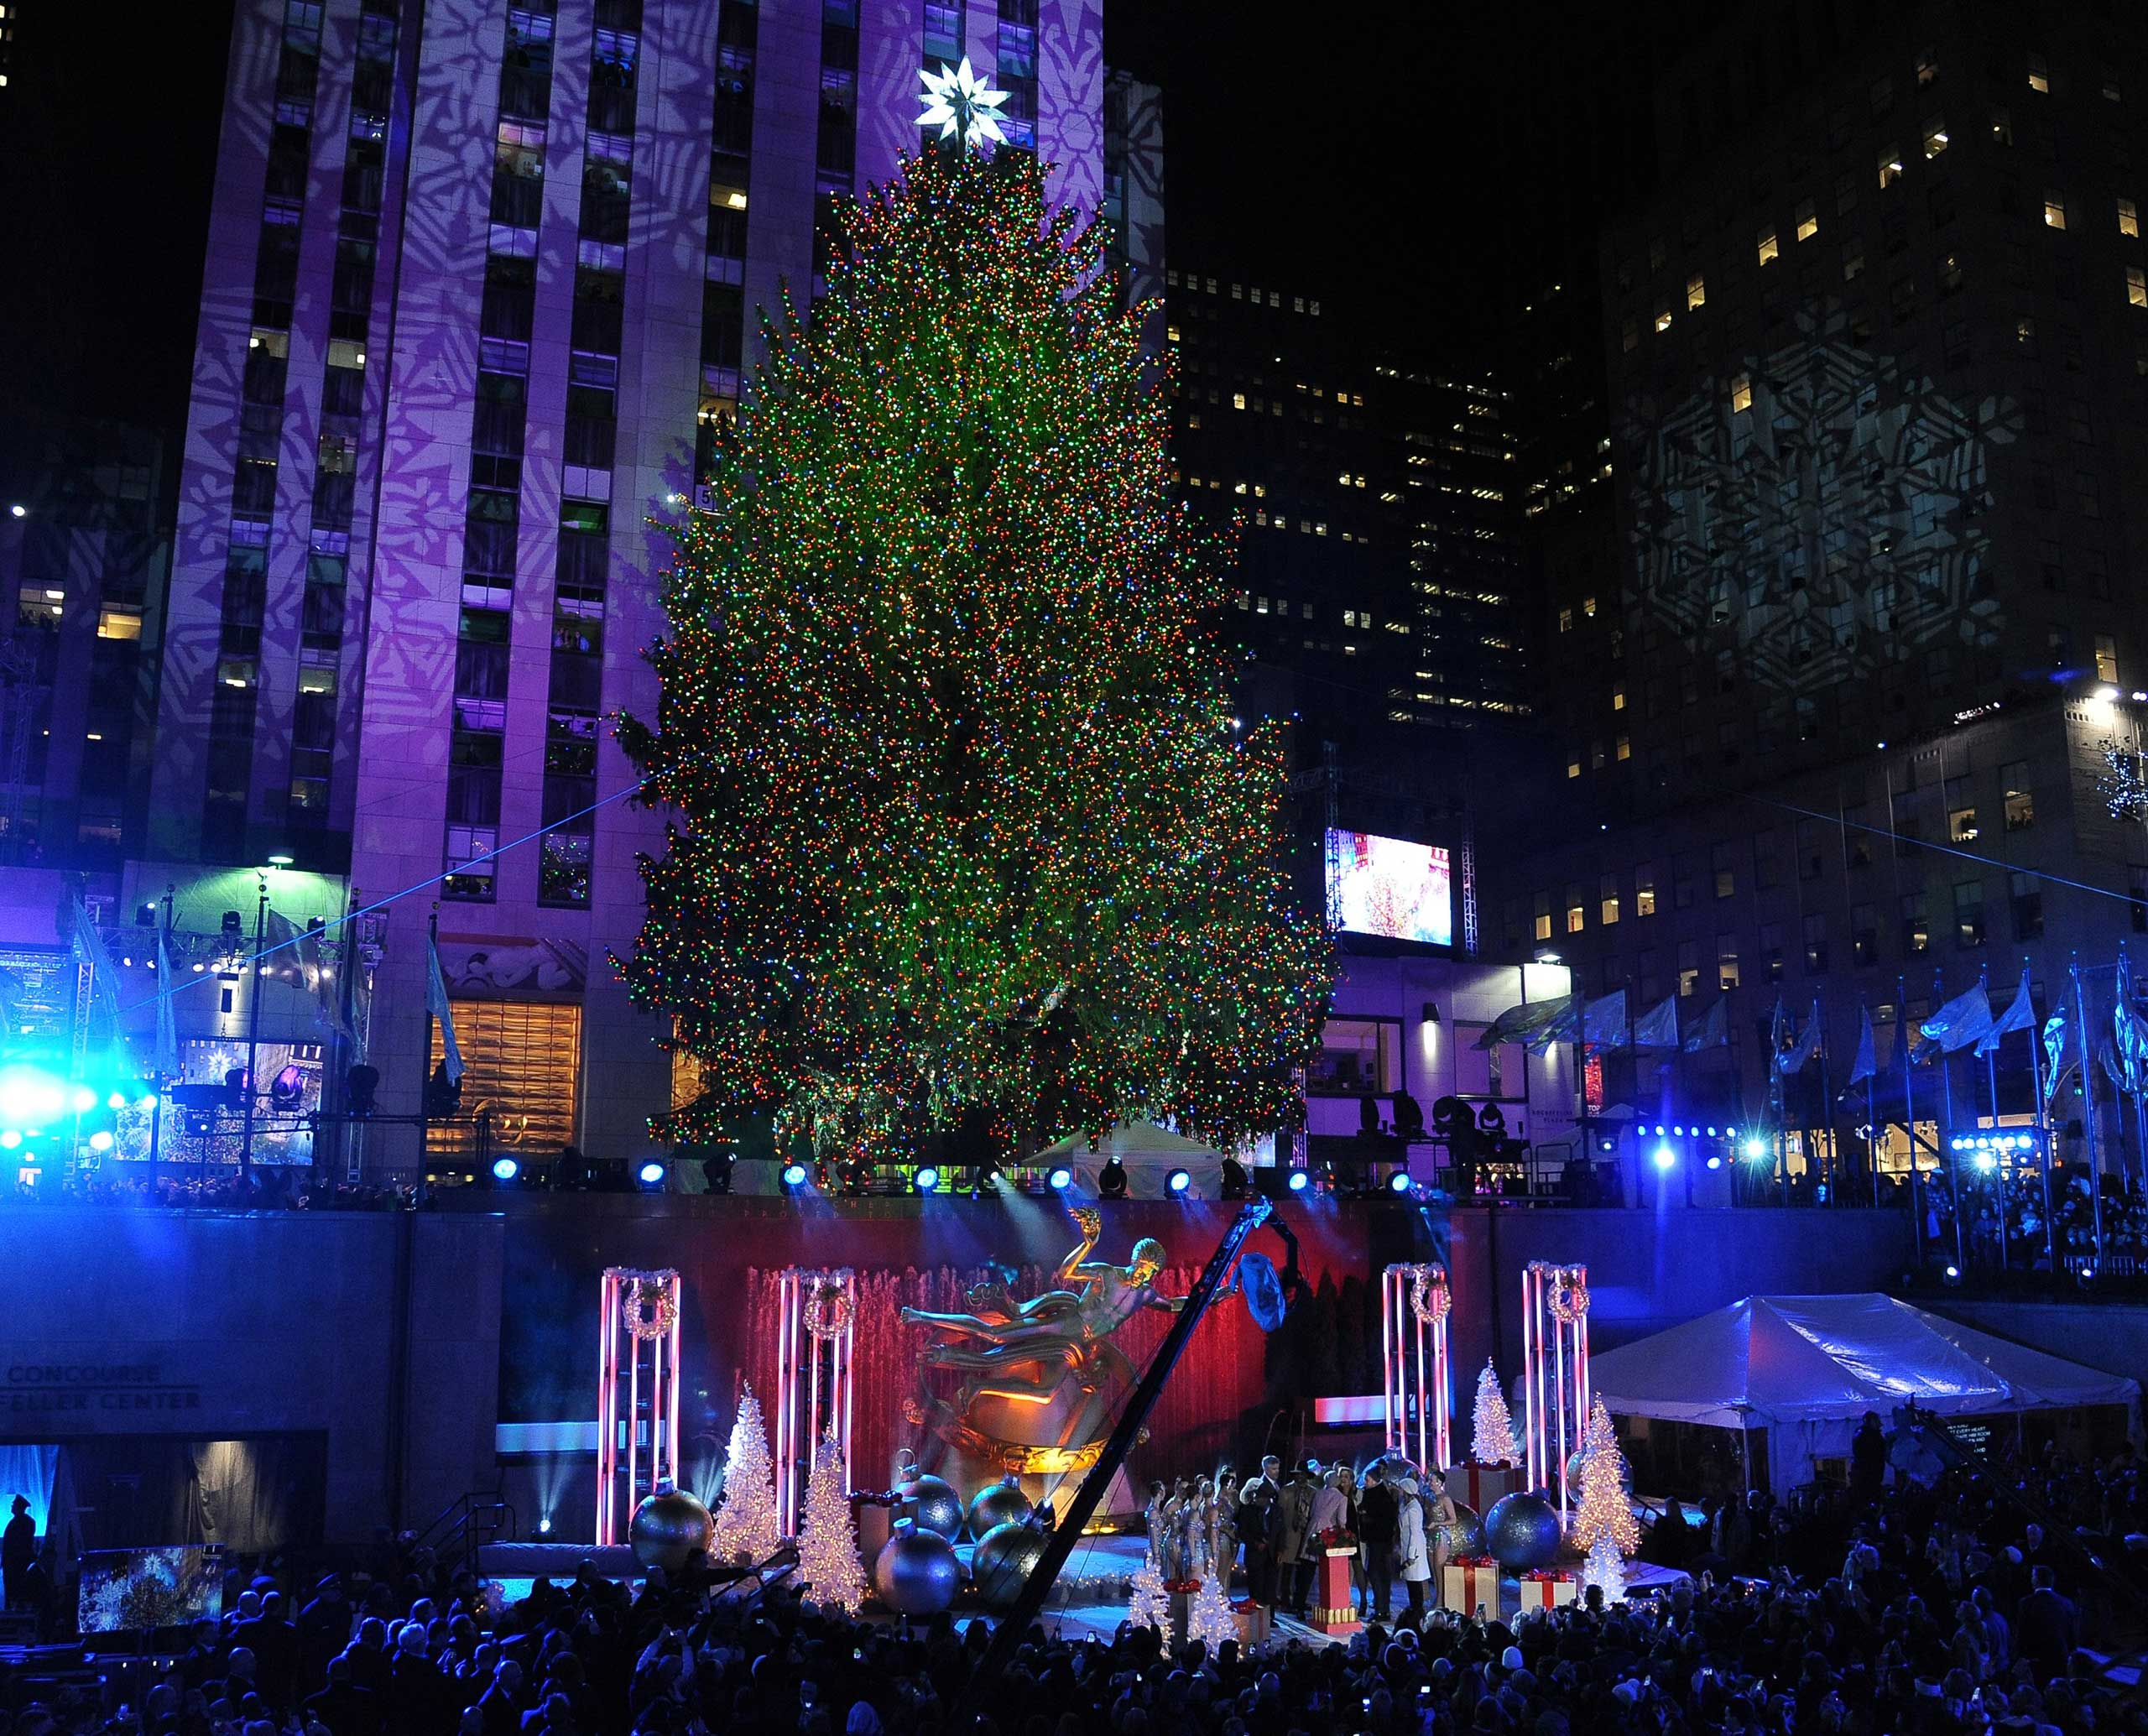 The 82nd Annual Rockefeller Christmas Tree Lighting Ceremony in New York City on Dec. 3, 2014.